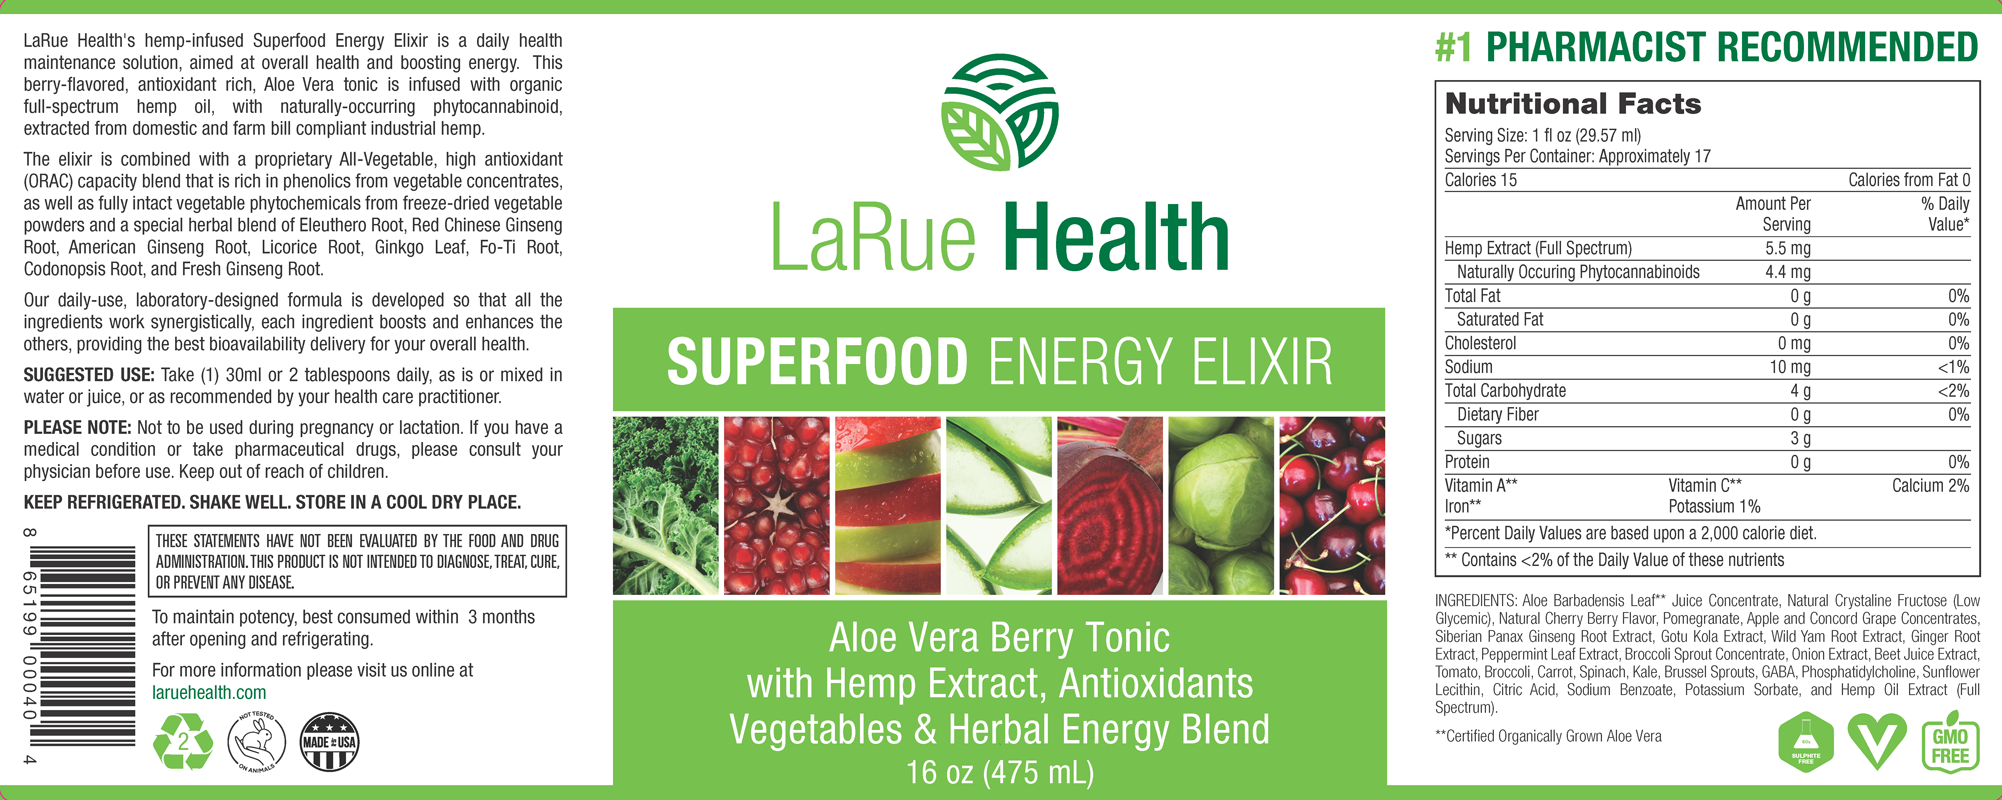 LaRue Health Superfood Energy Elixir